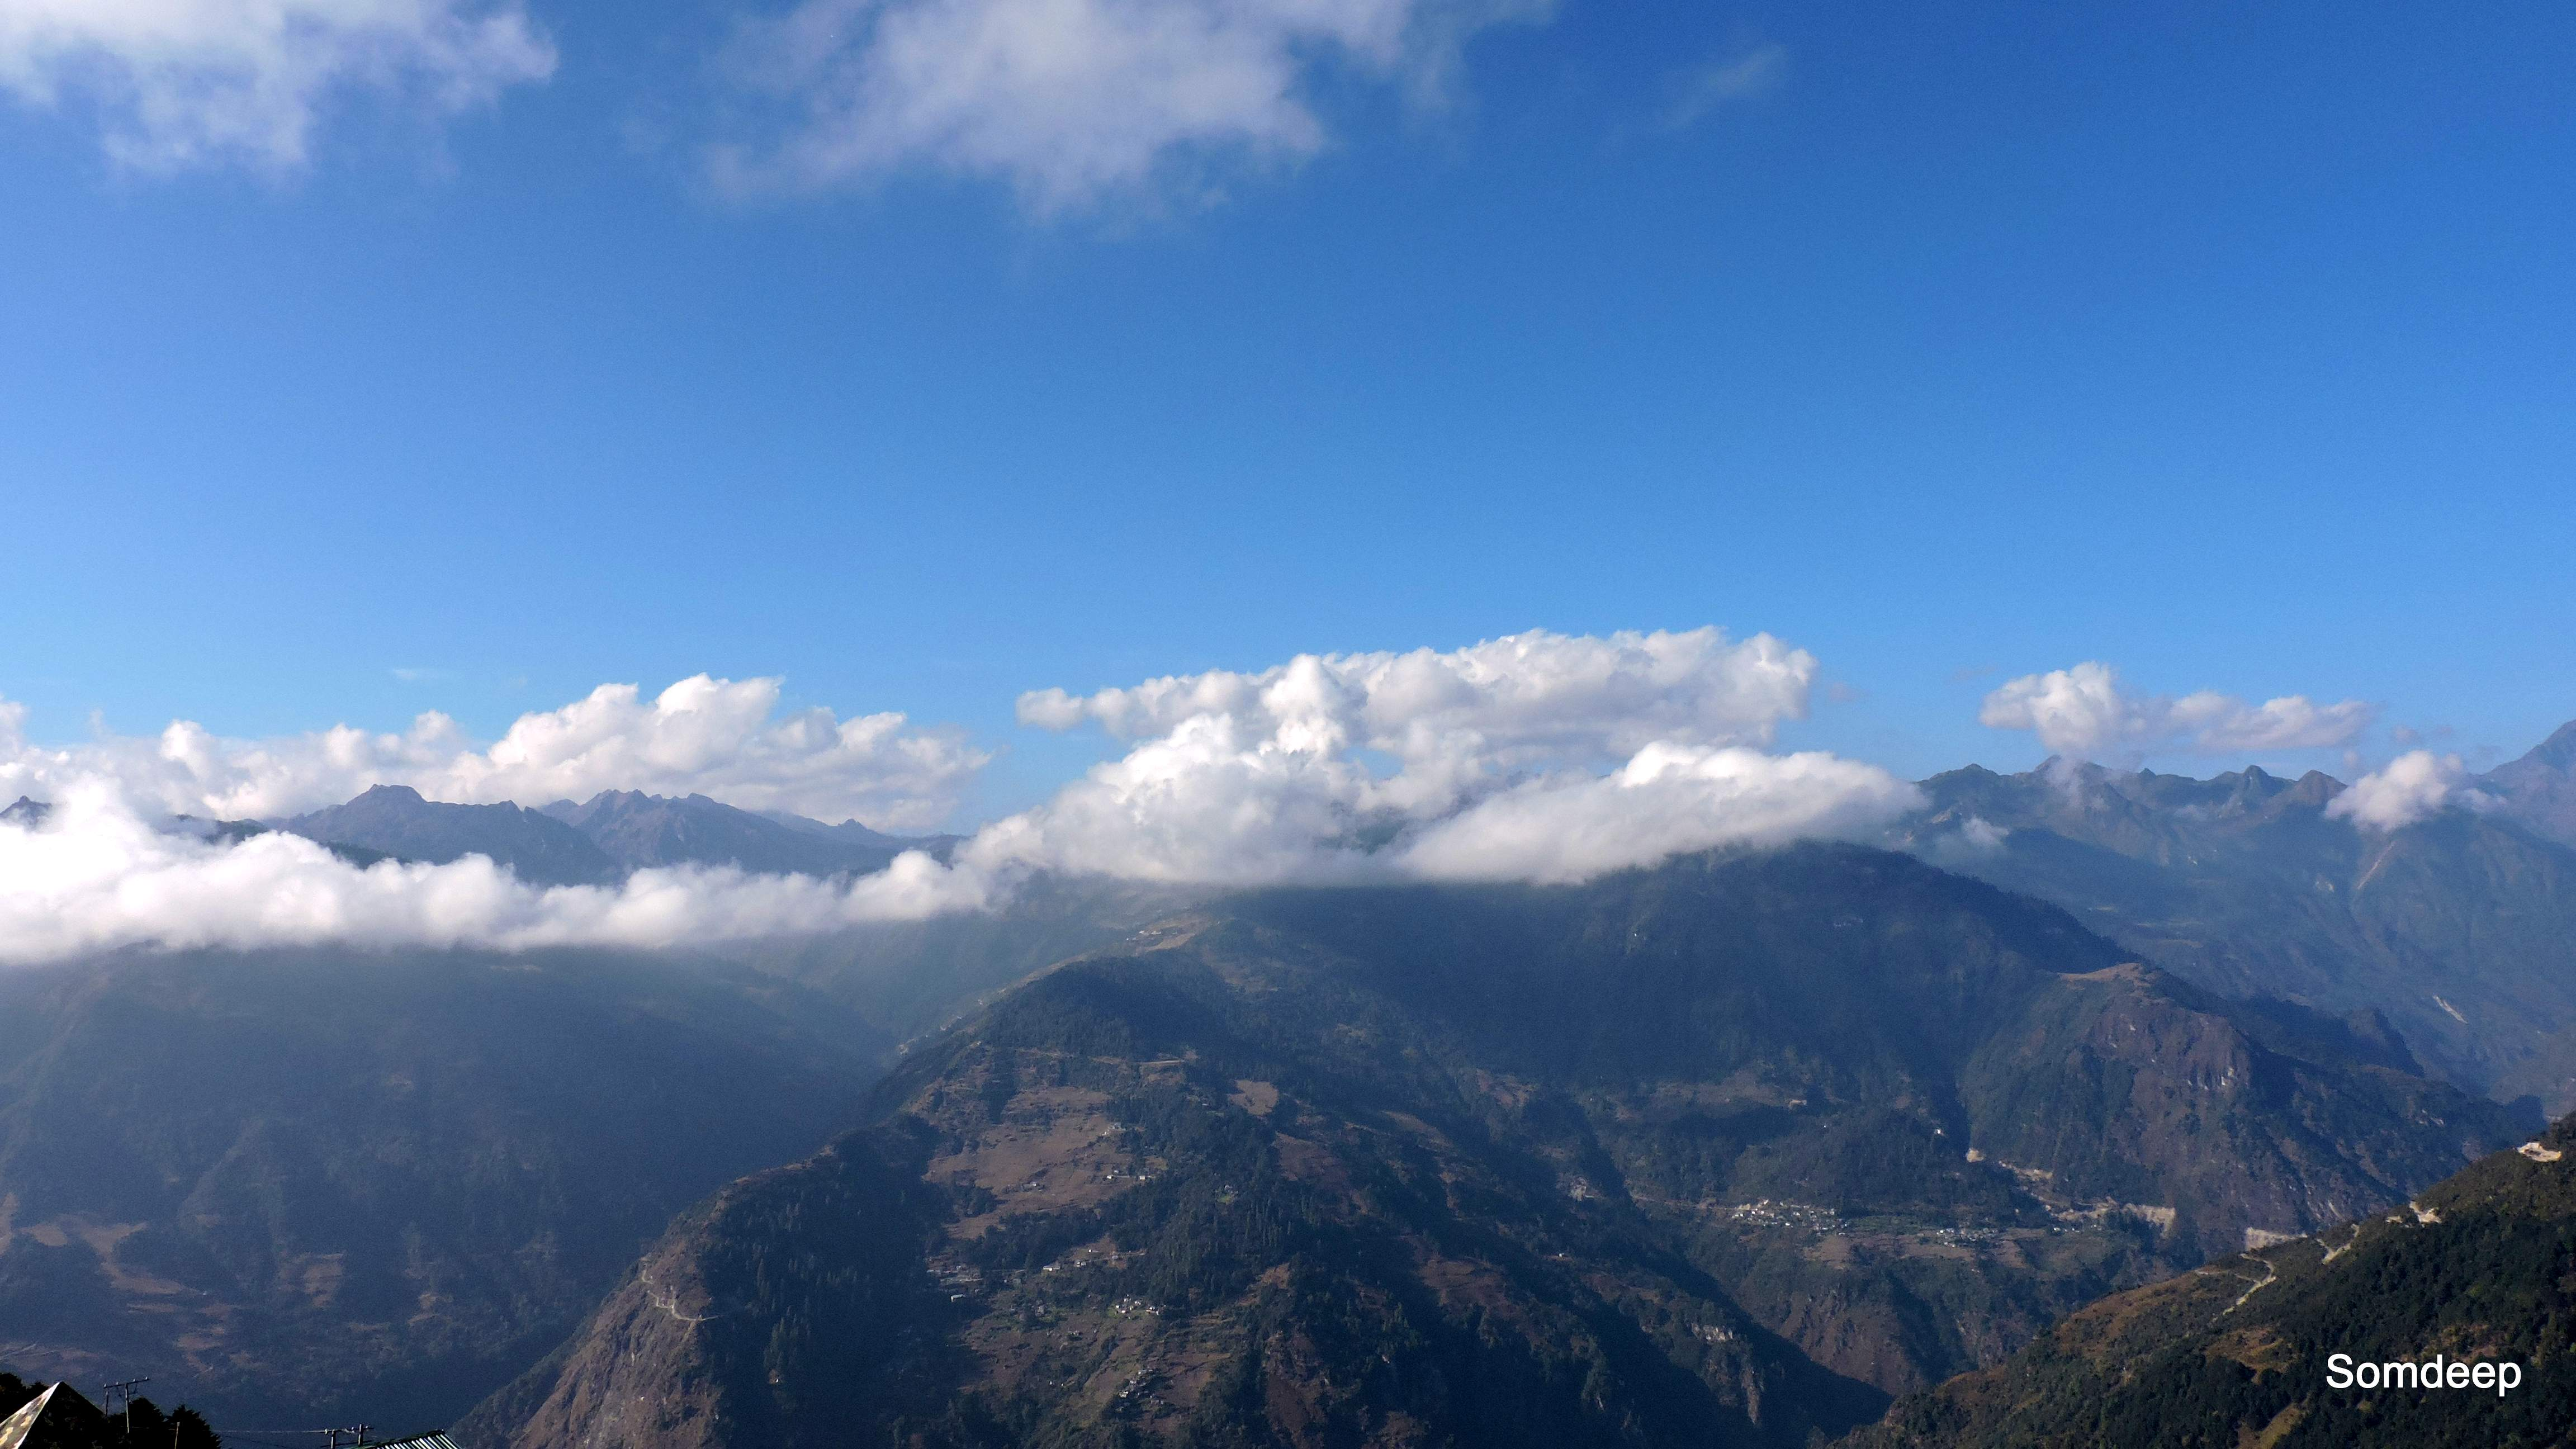 Clouds and mountains, view from Jaswantgarh